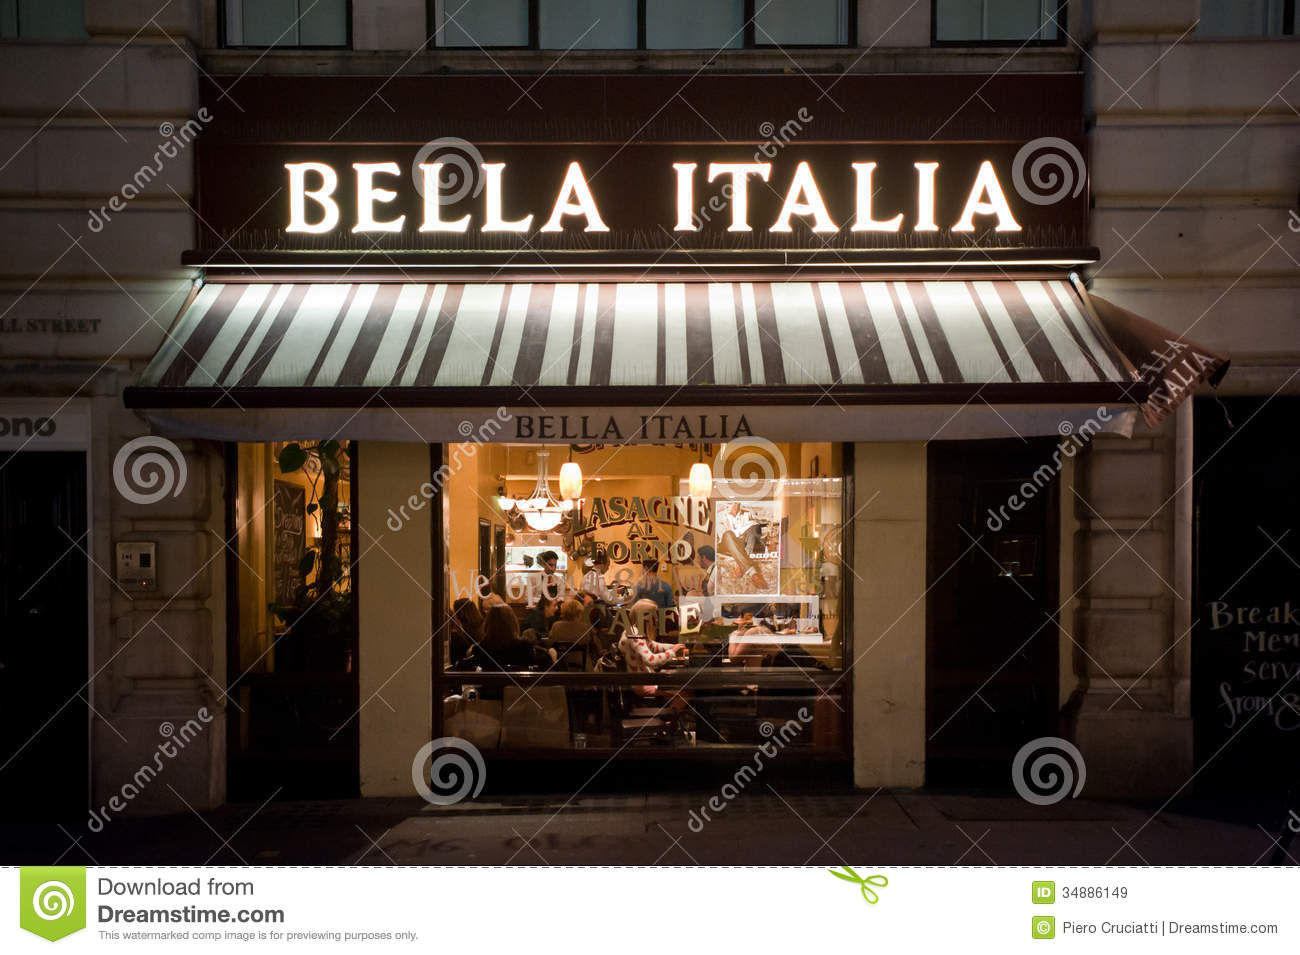 Italian Restaurant In London Editorial Stock Image - Image: 34886149